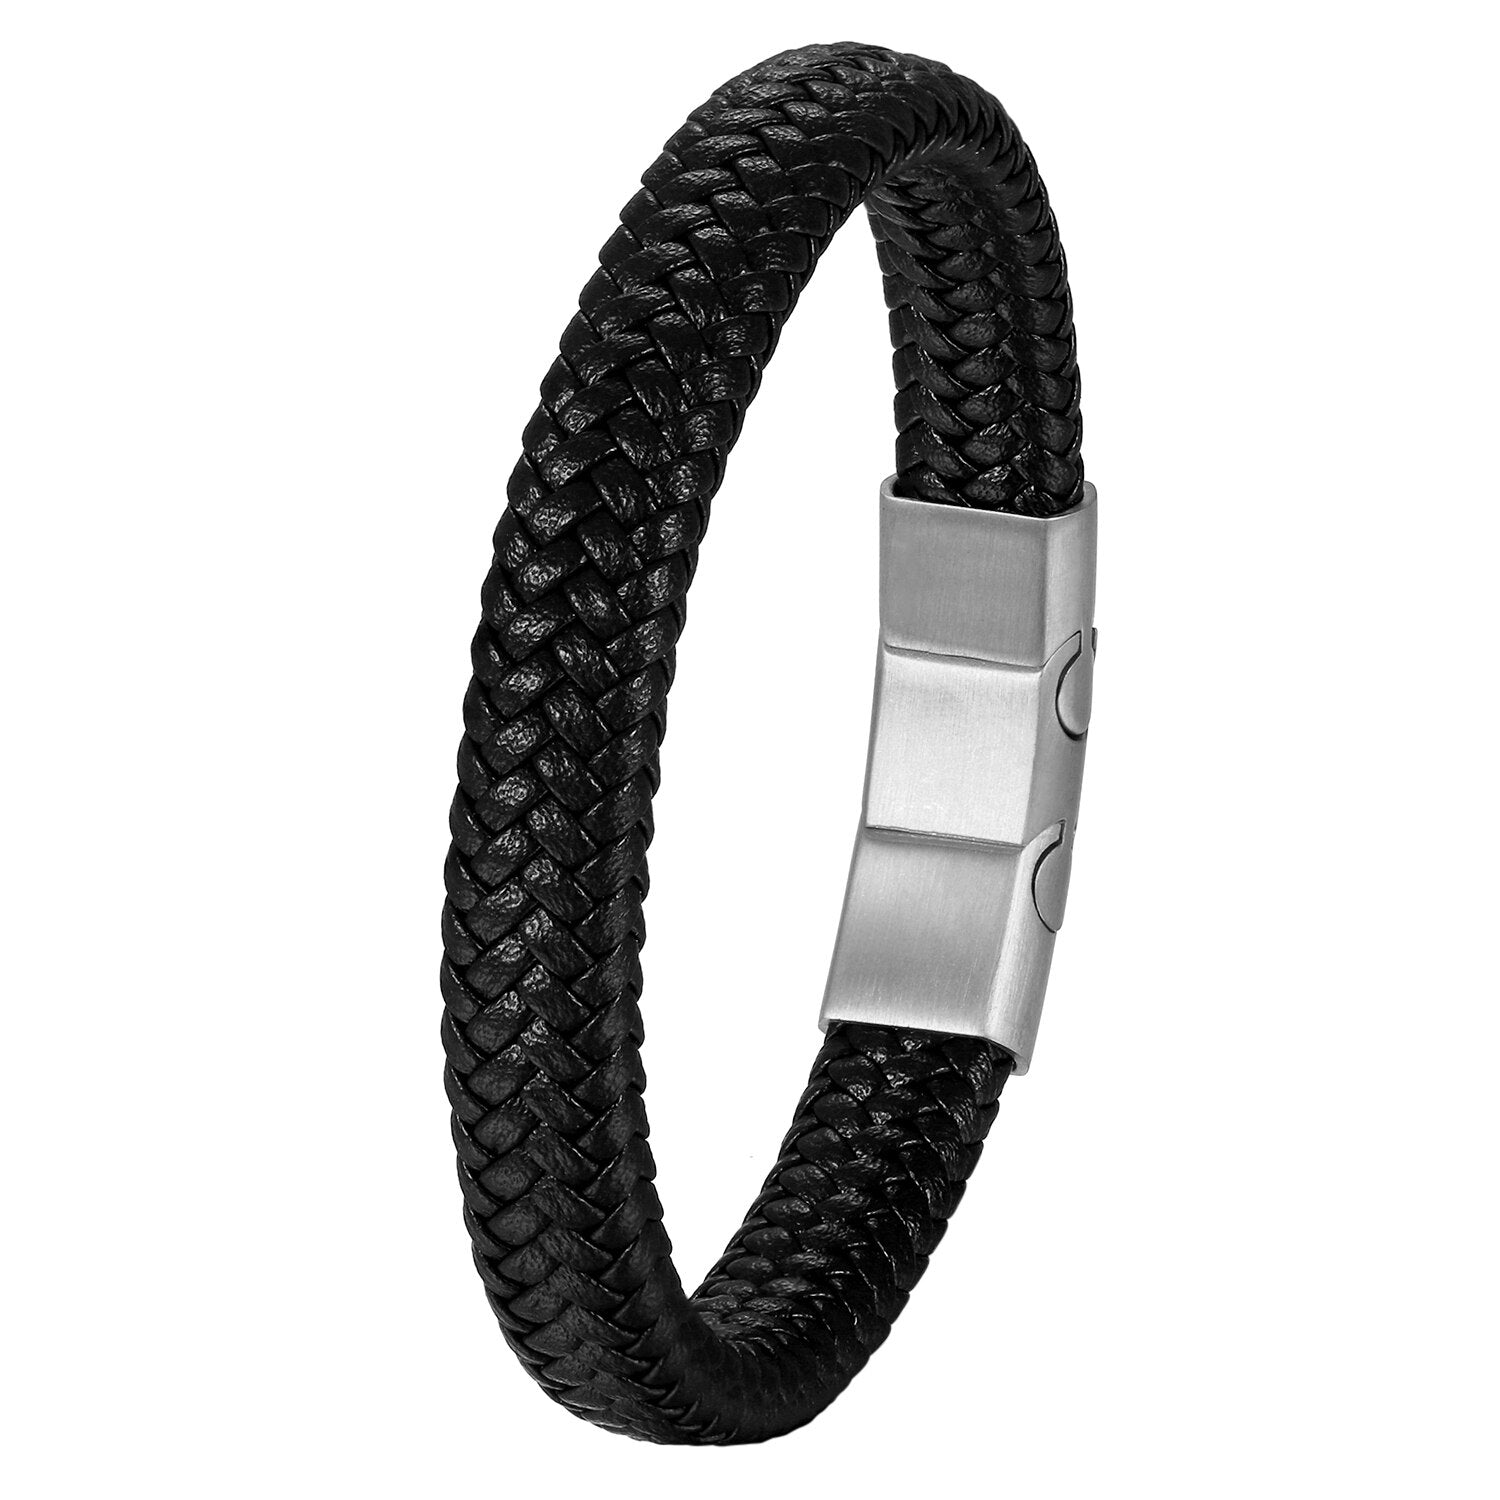 Men's Leather Bracelet With Stainless Steel Clasp